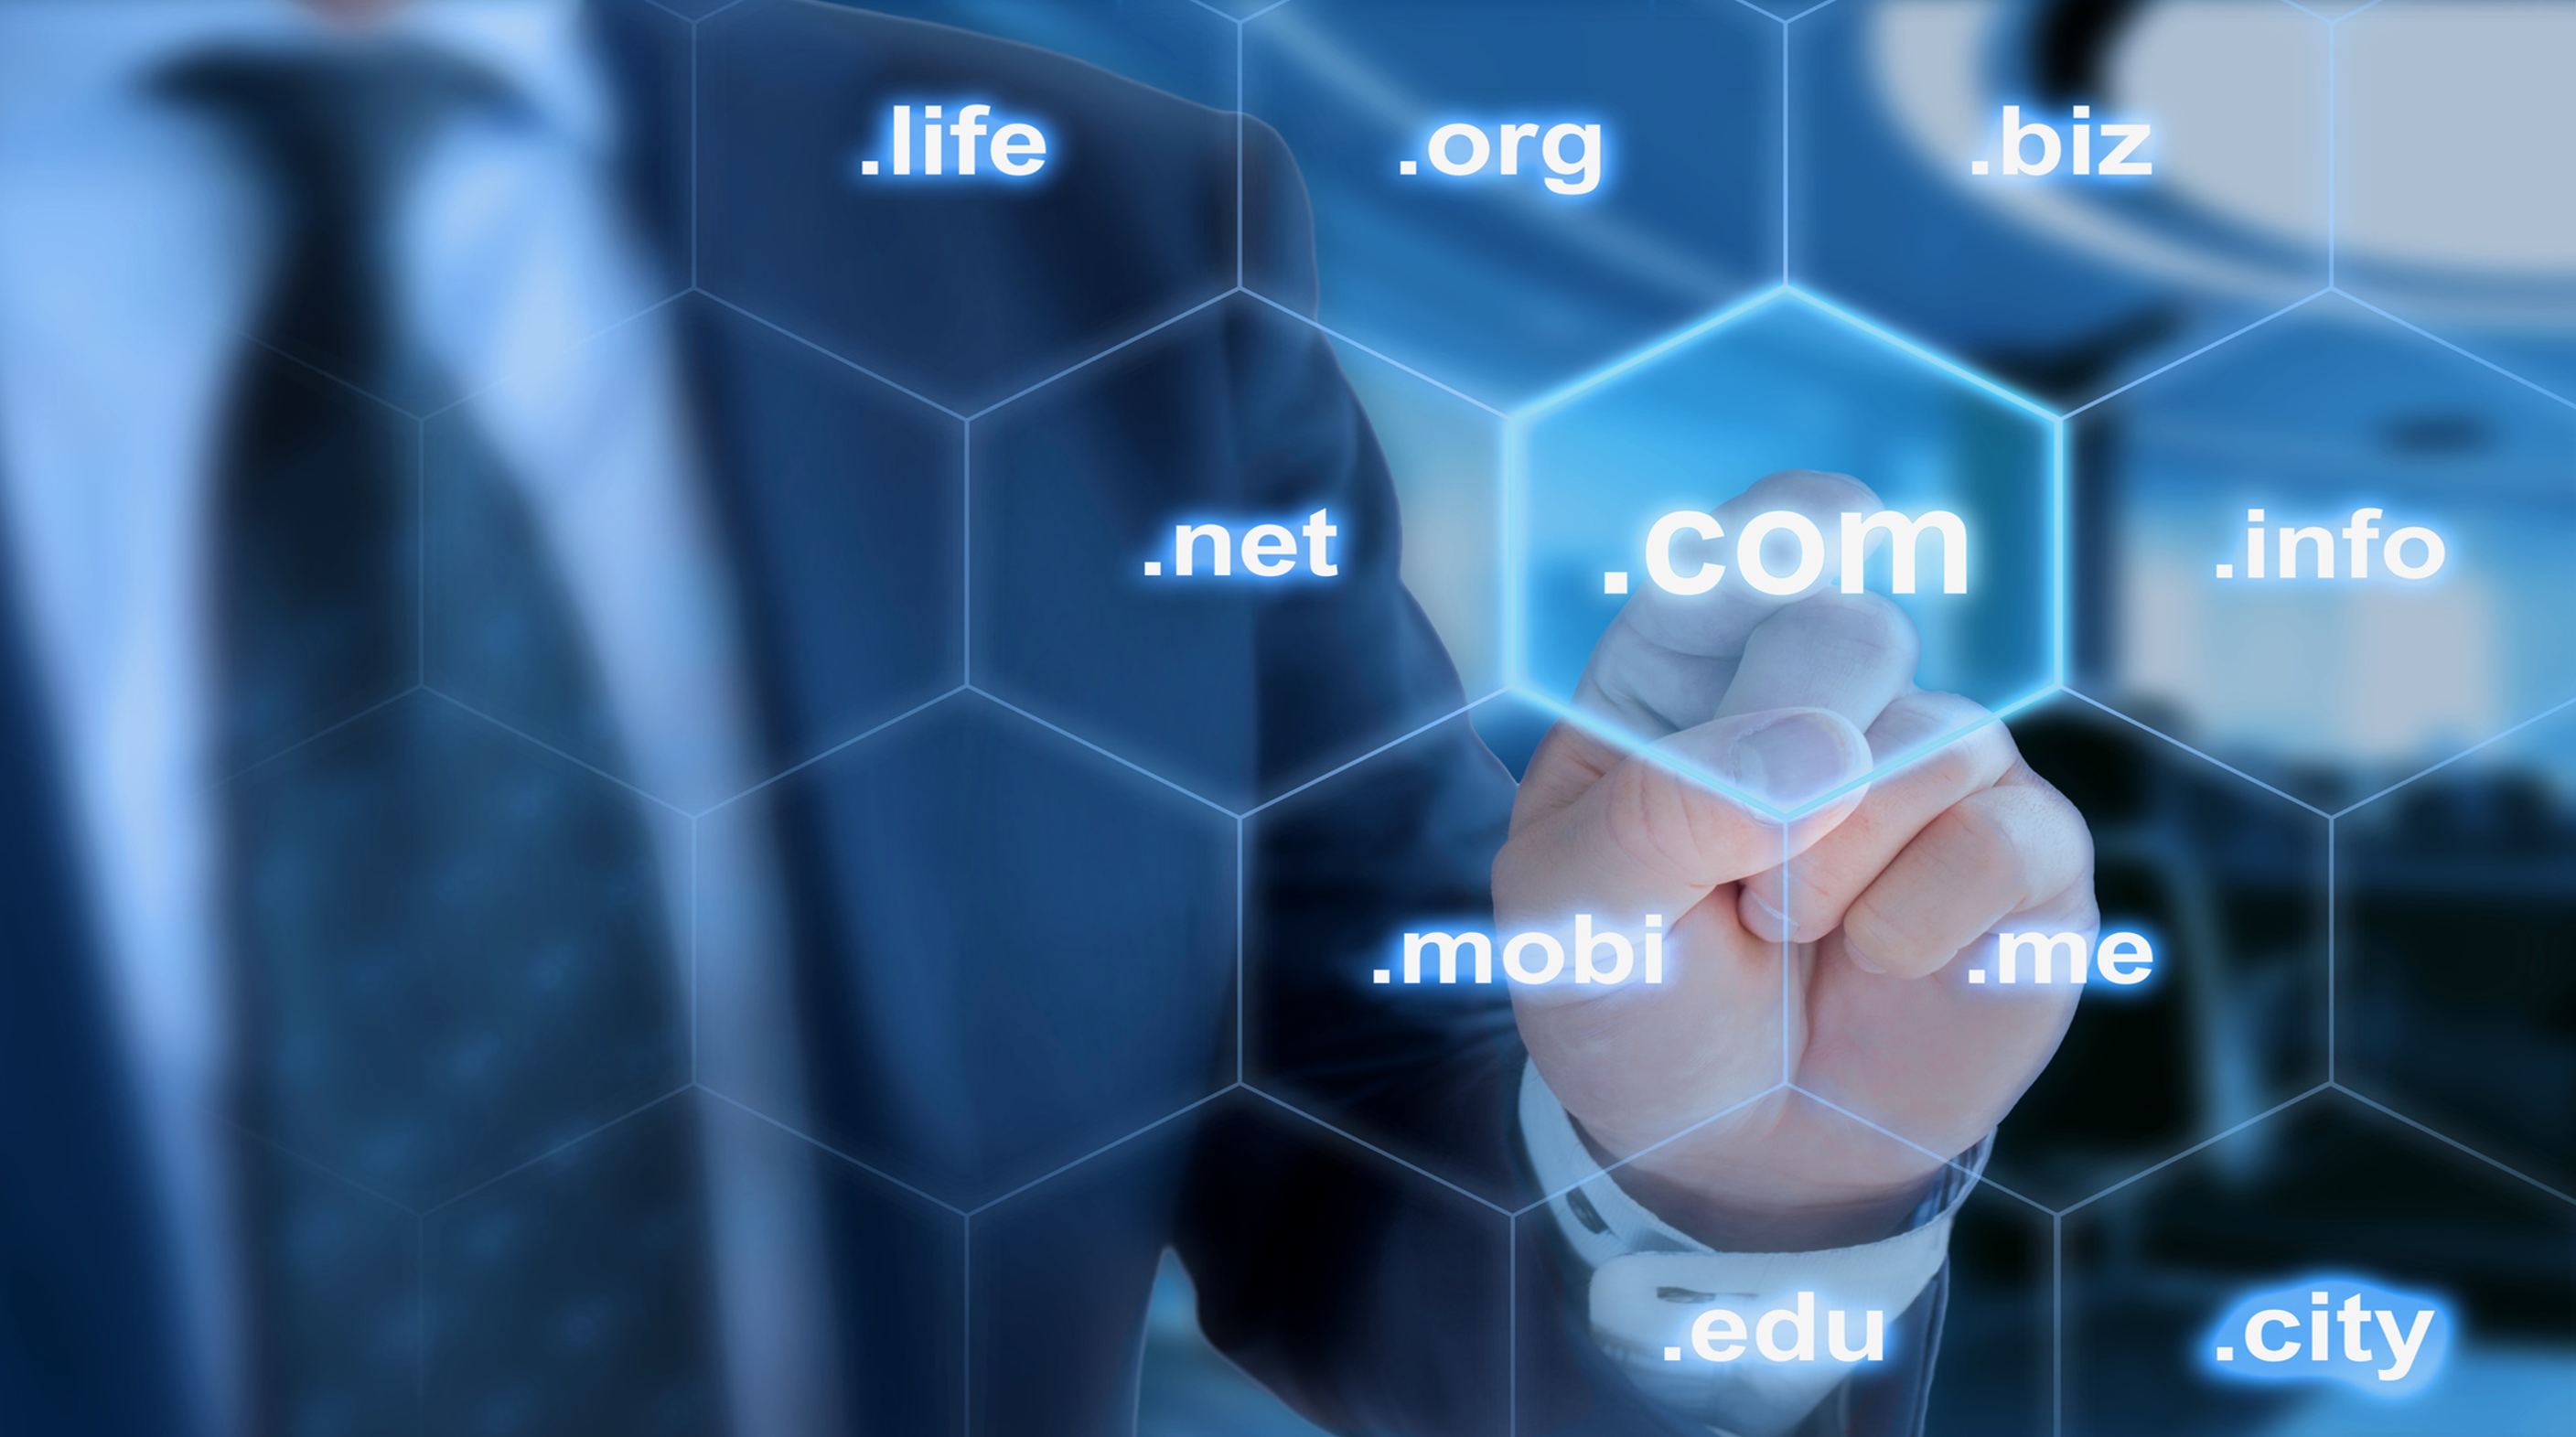 How Much Is A Domain Name Worth? Negotiating A Domain Name Purchase Without Getting Ripped Off